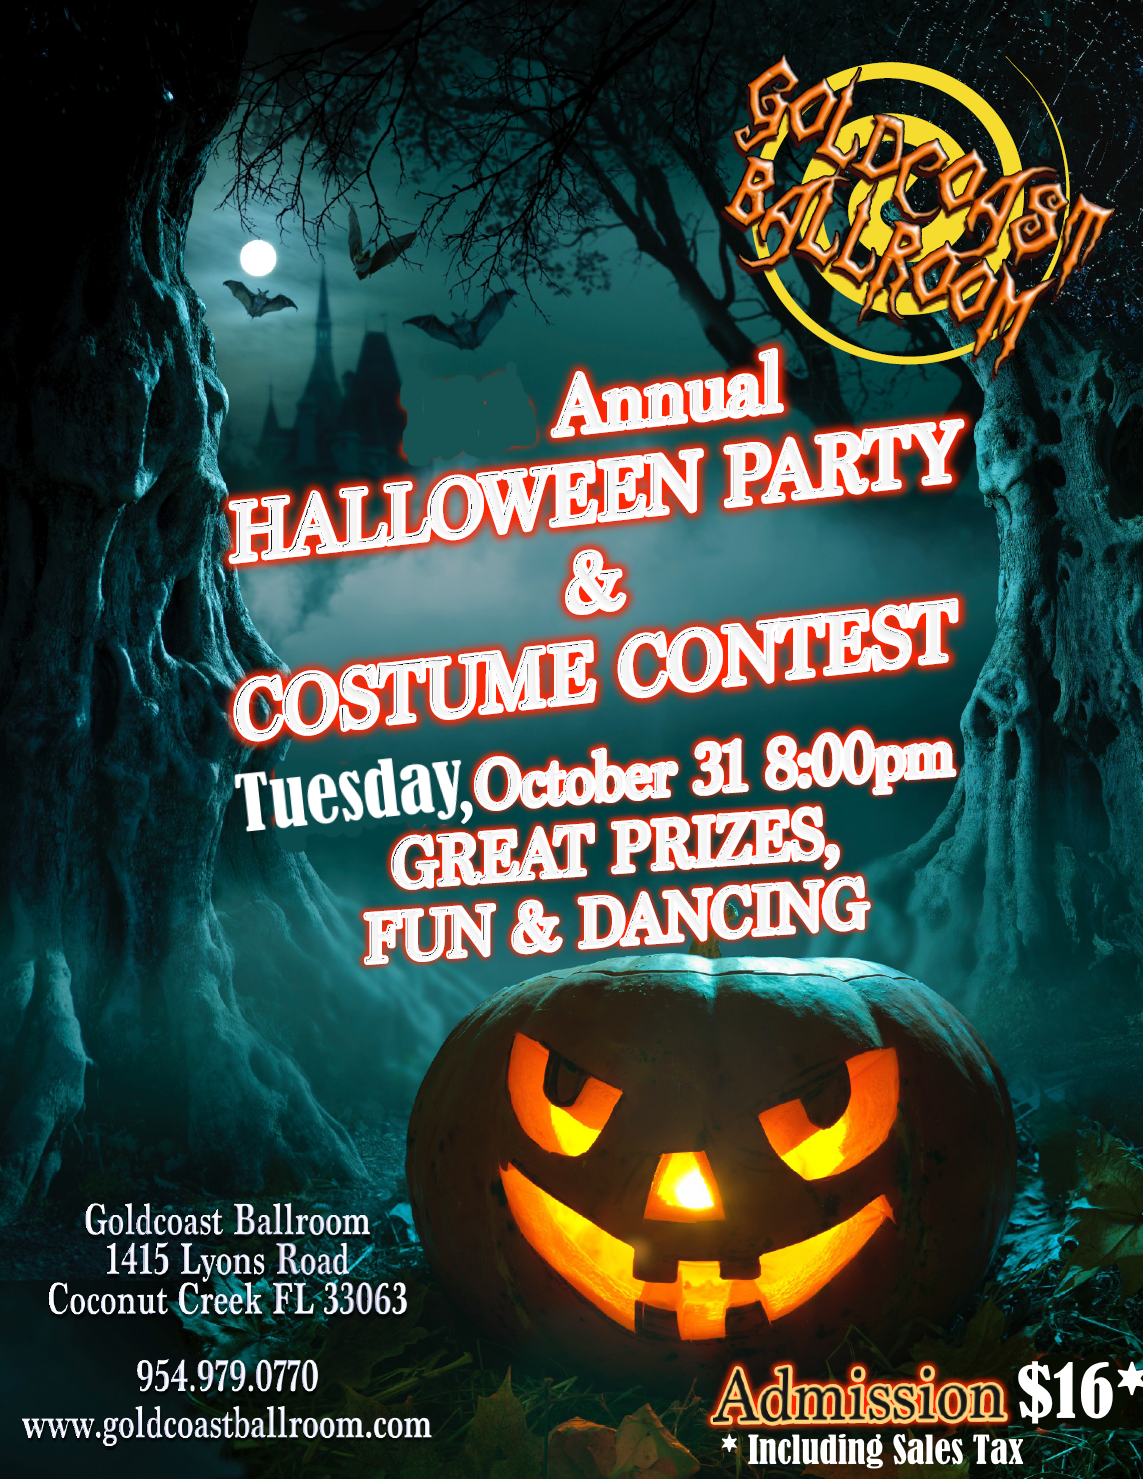 Annual Halloween Party & Costume Contest!! - Win Prizes!! - Tuesday, October 31, 2017 -  8 PM